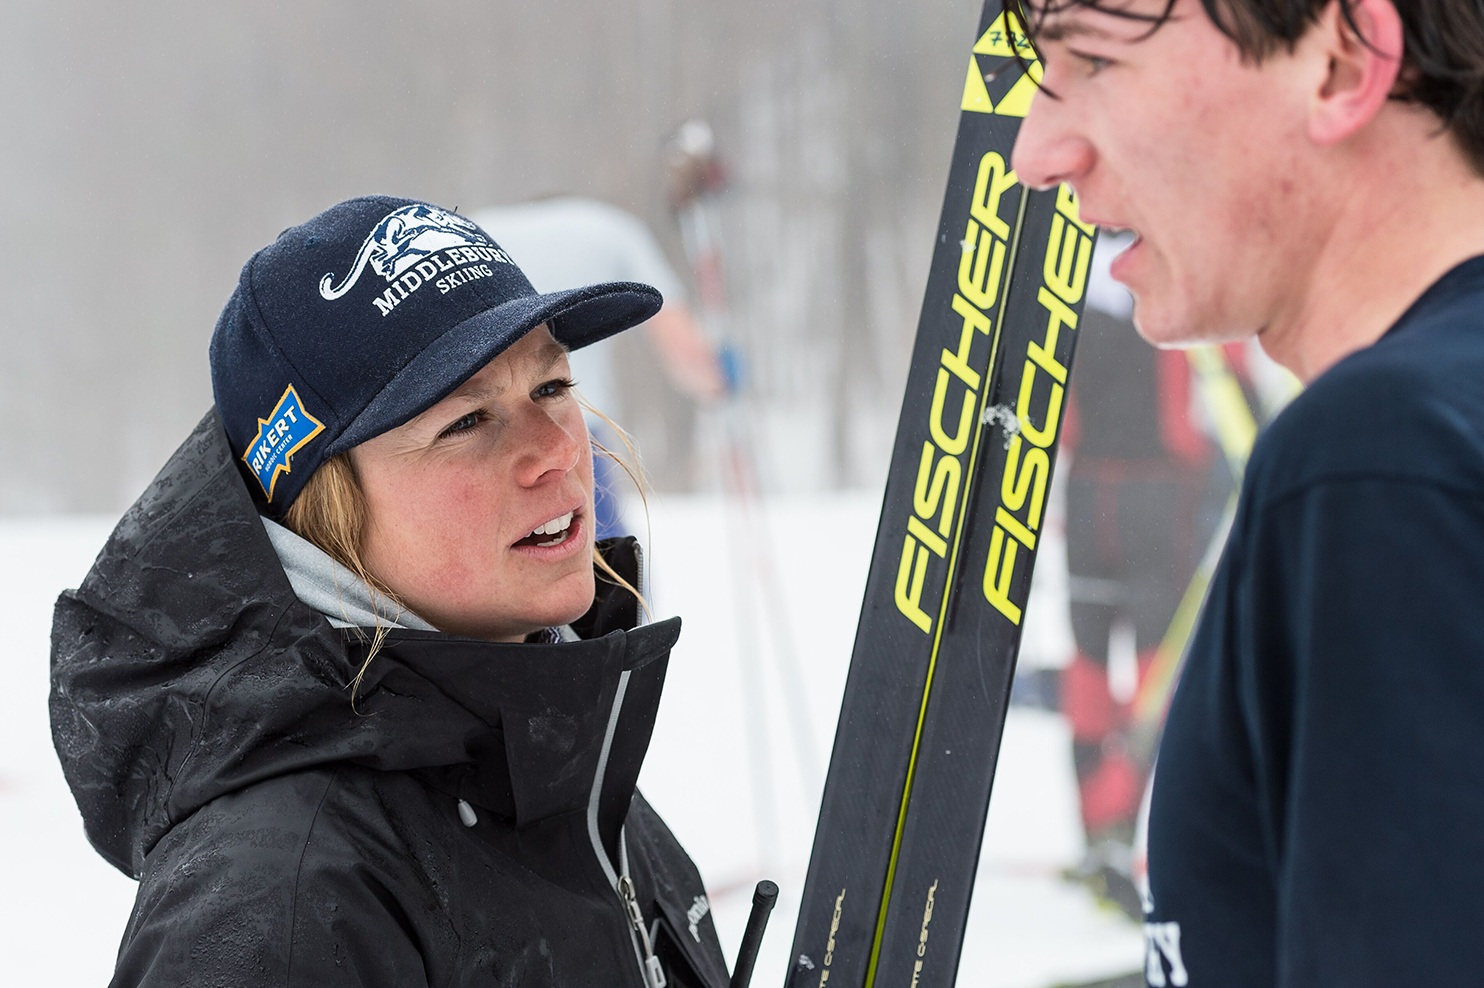 The Voice and Future of Women in Coaching. - Women Ski Coaches Association (WSCA) works to develop, retain, and advance women in ski coaching leadership.